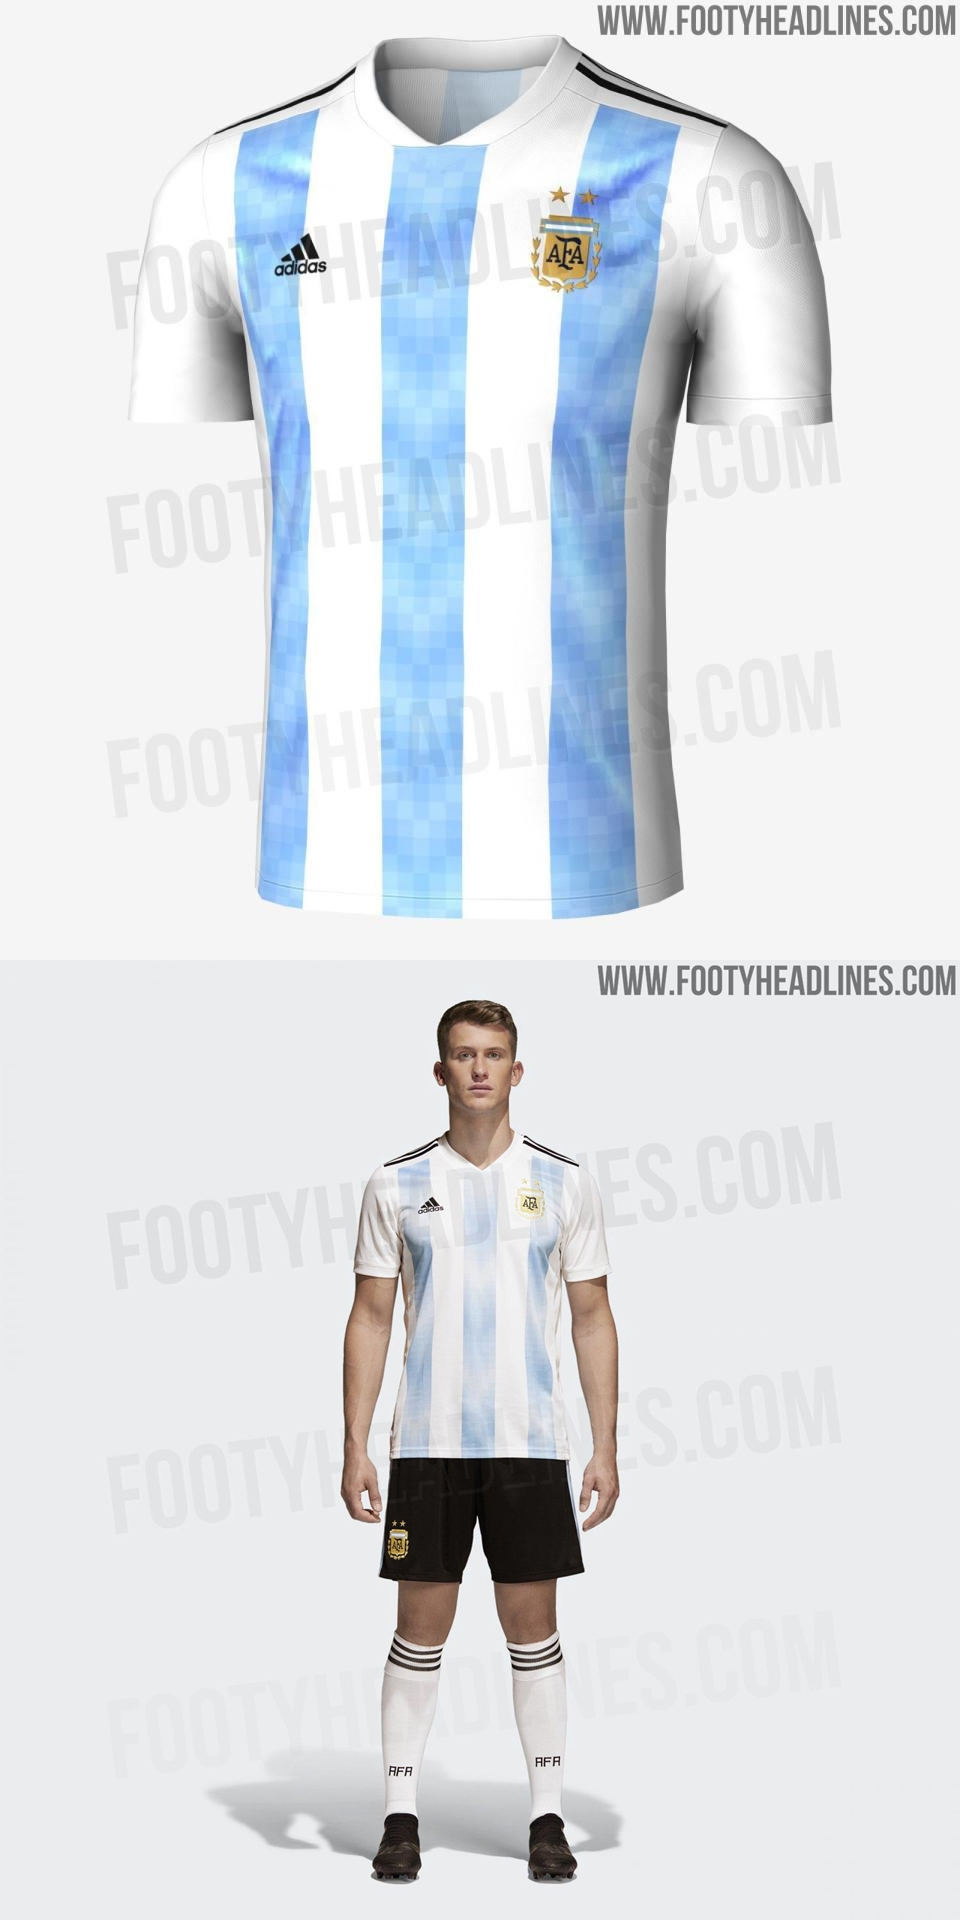 fea7a957423 Leaked World Cup kits show that Fifa have scrapped one of their ...